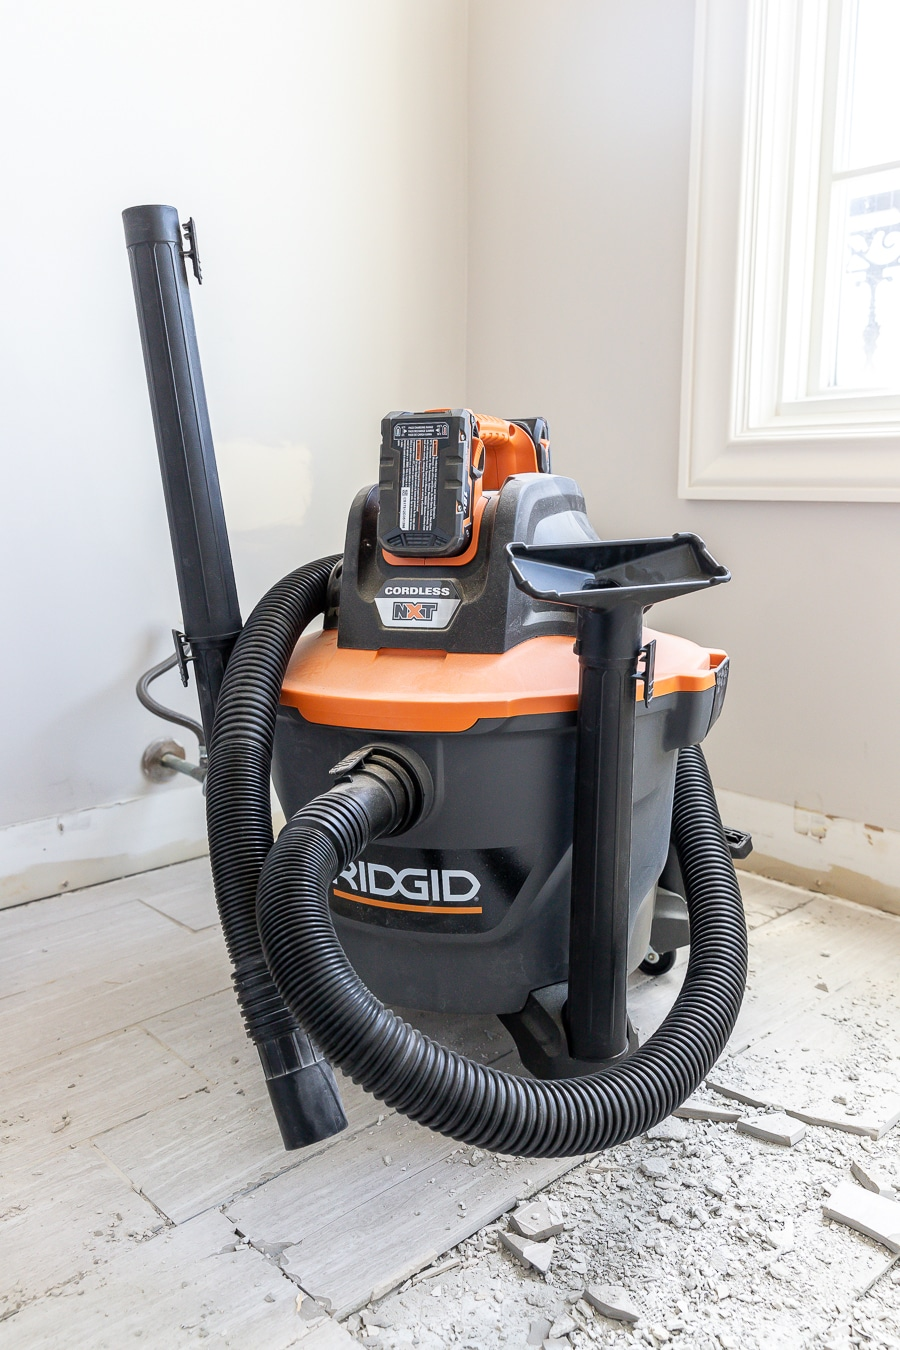 Battery-powered Shop Vac - a must-have tool for demo!